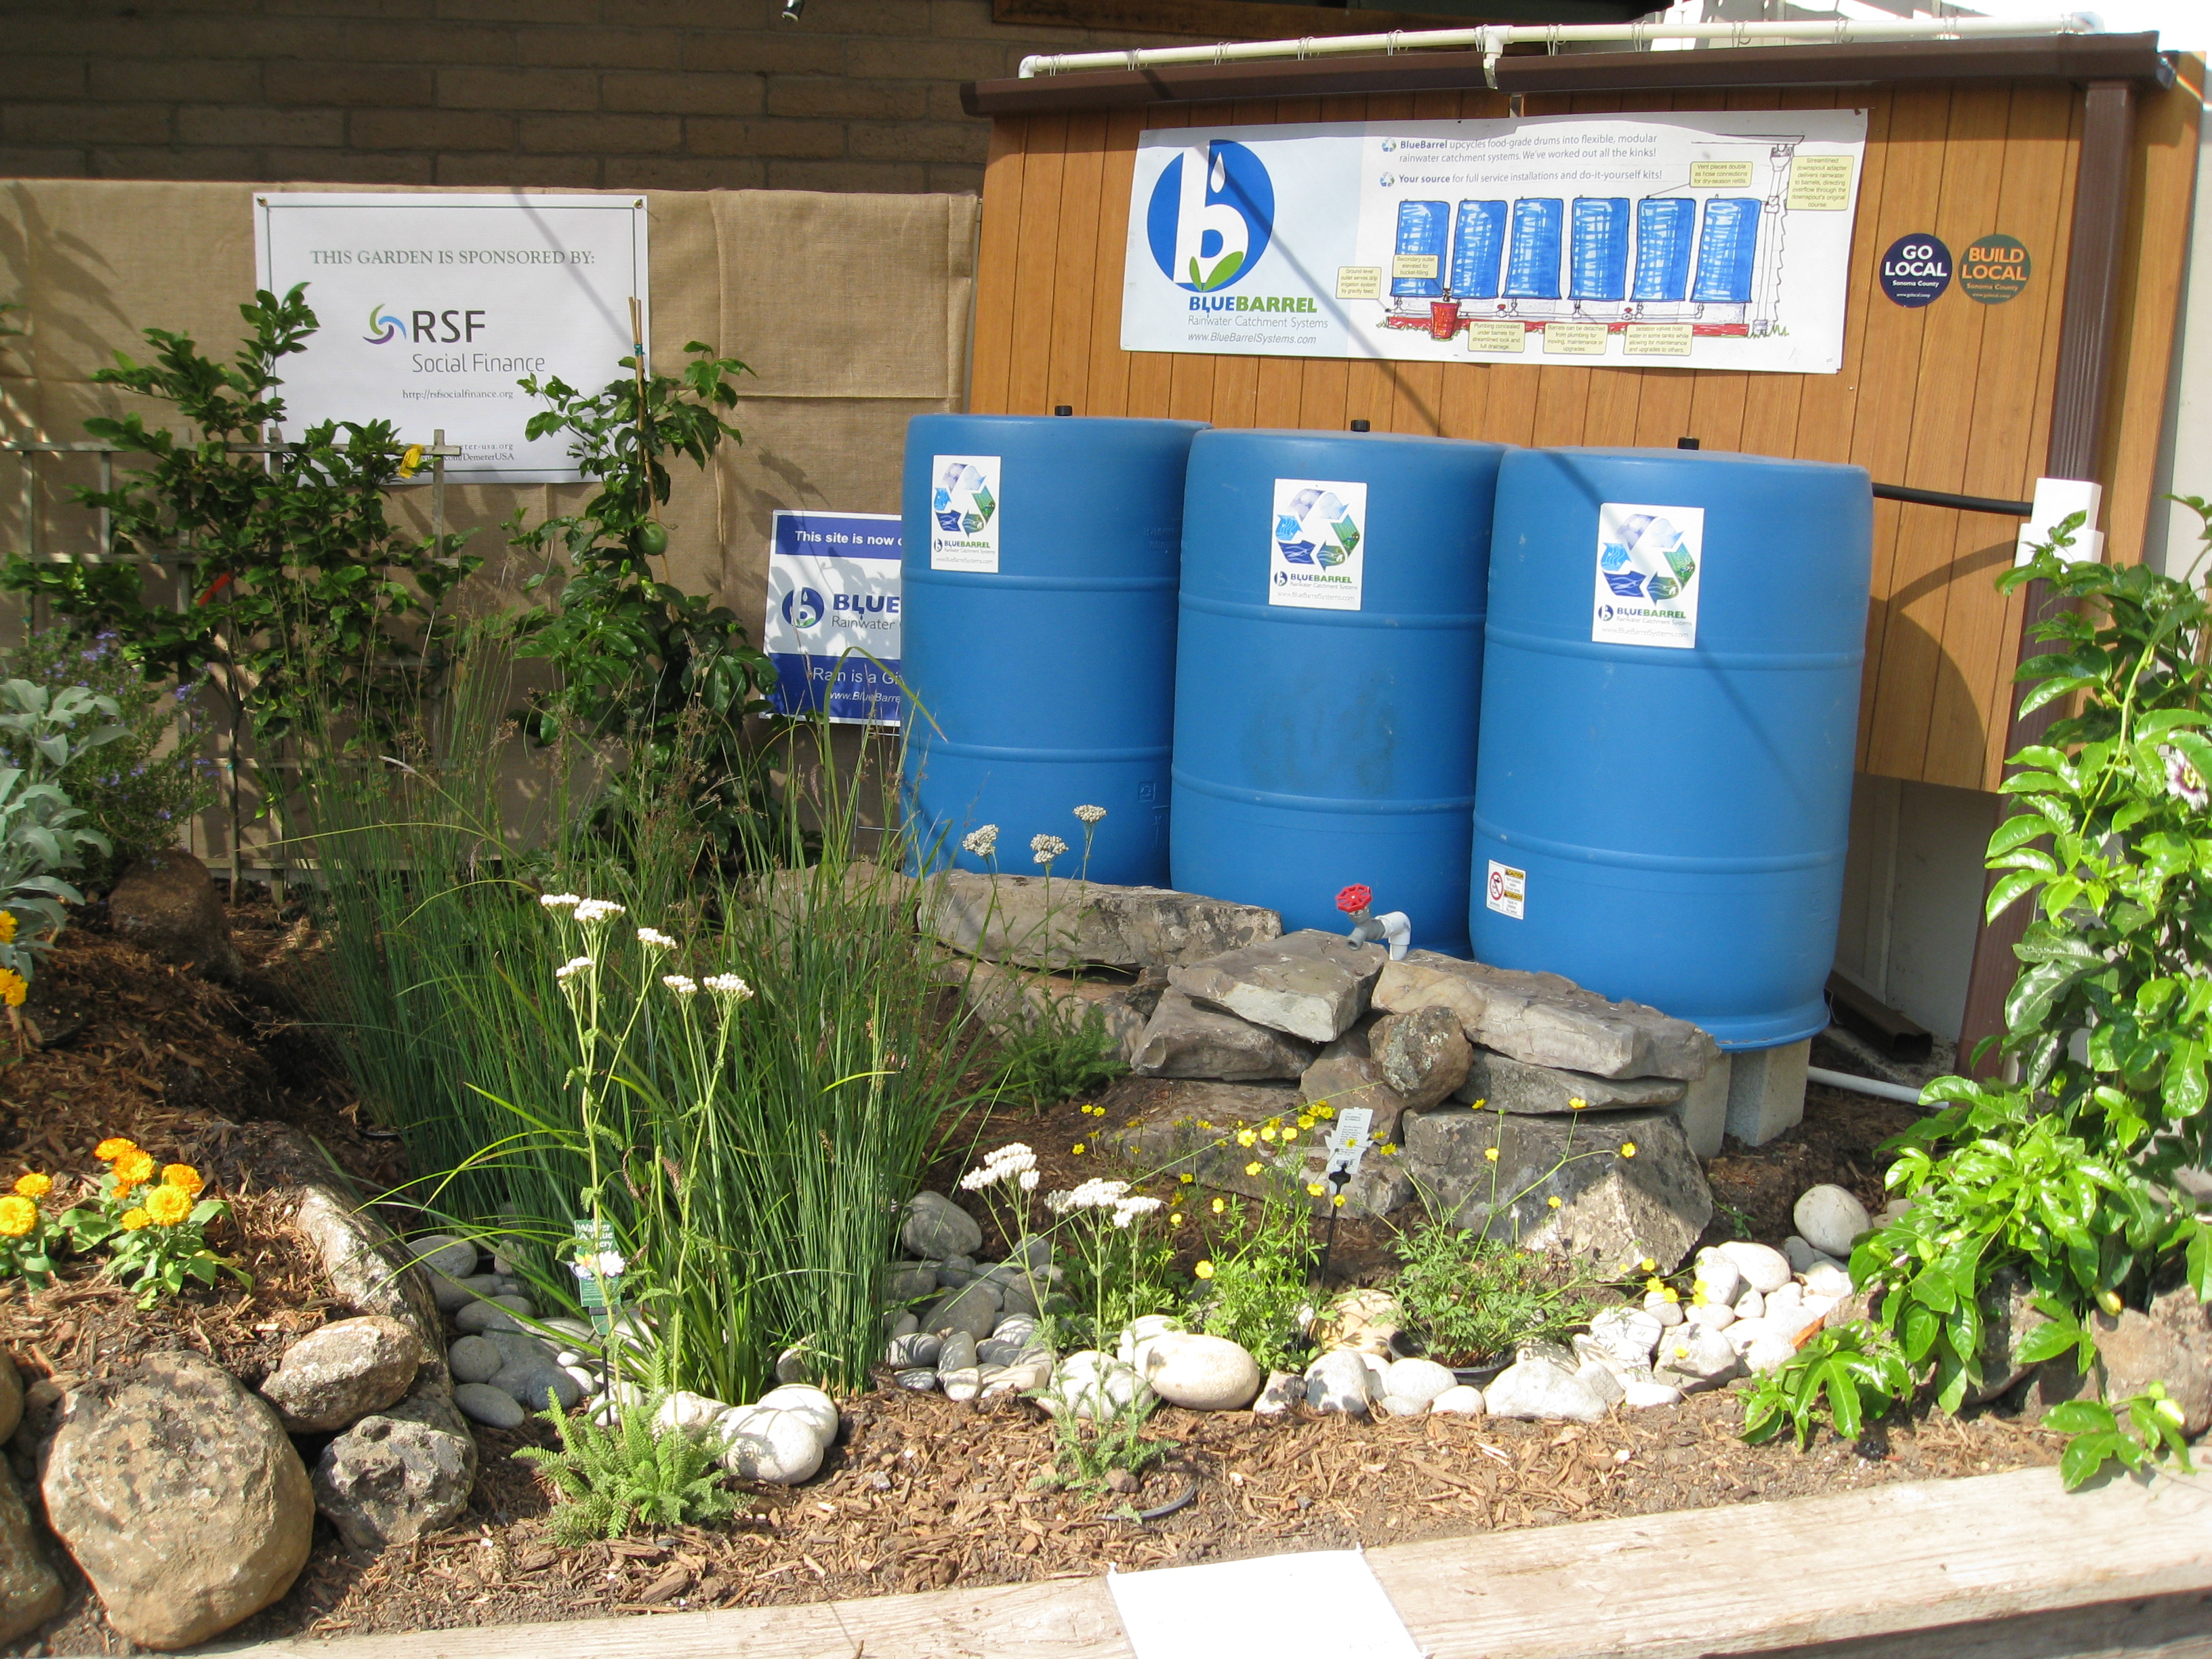 Water catchment was a hot topic, given the CA drought.